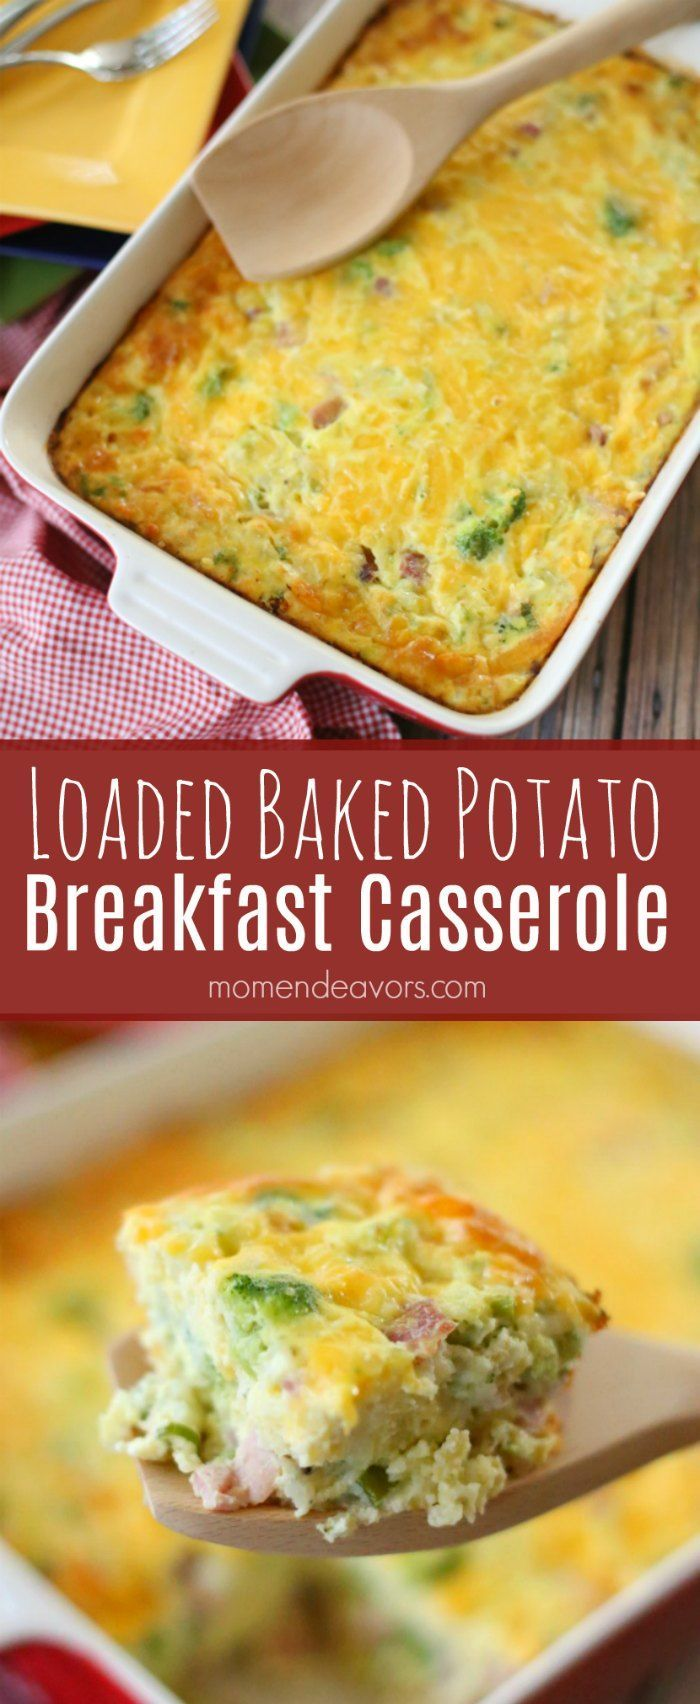 Loaded Baked Potato Breakfast Casserole - a tasty and hearty way to start the day. Perfect, easy make ahead meal! Sponsored by Shamrock Farms